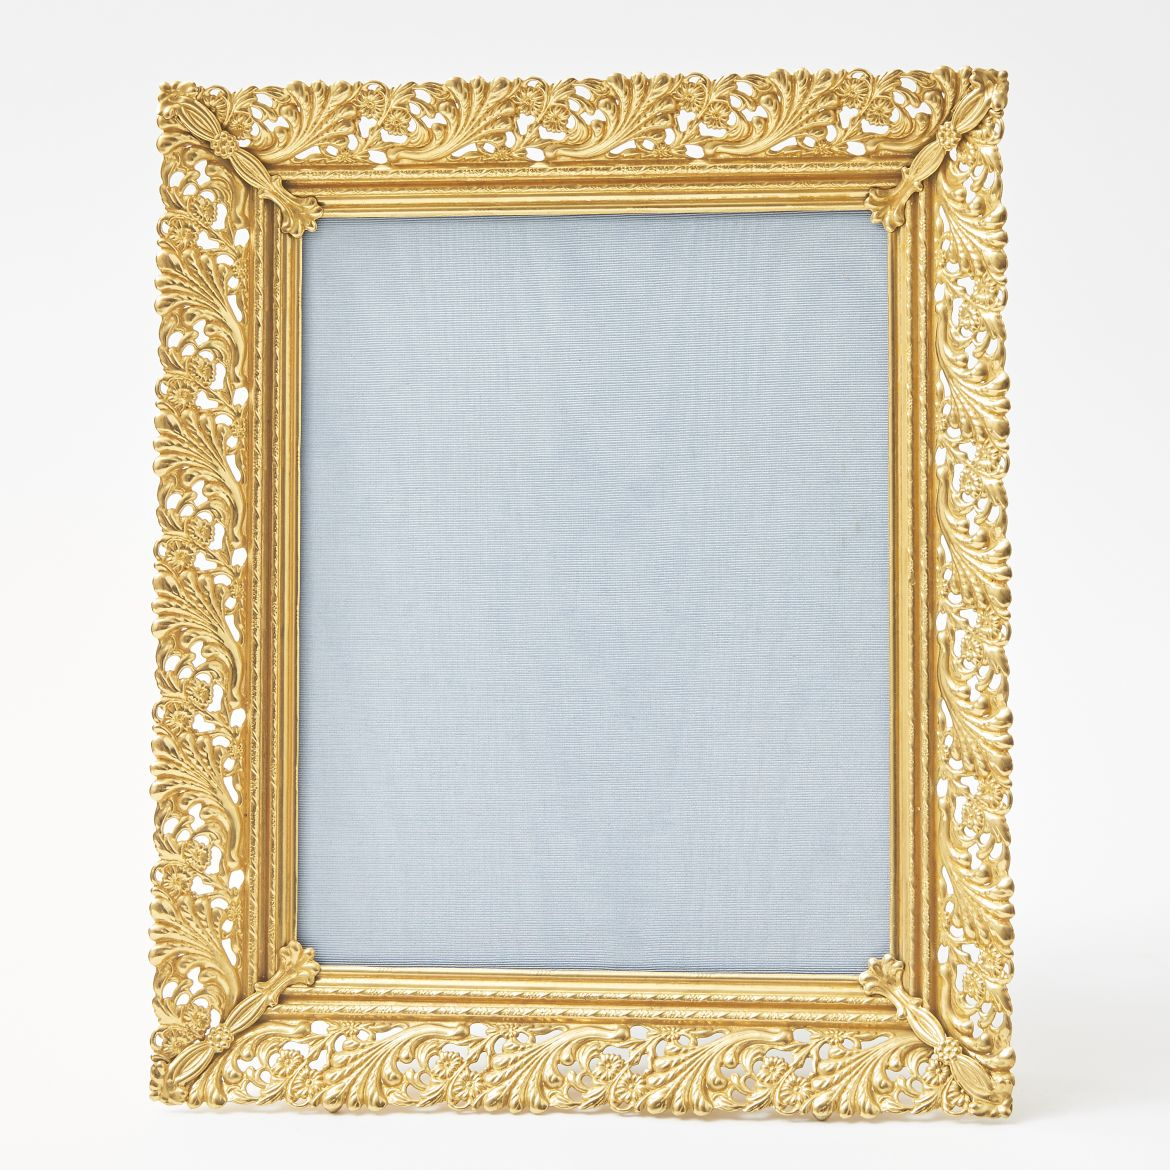 Frame with Foliate Detailing